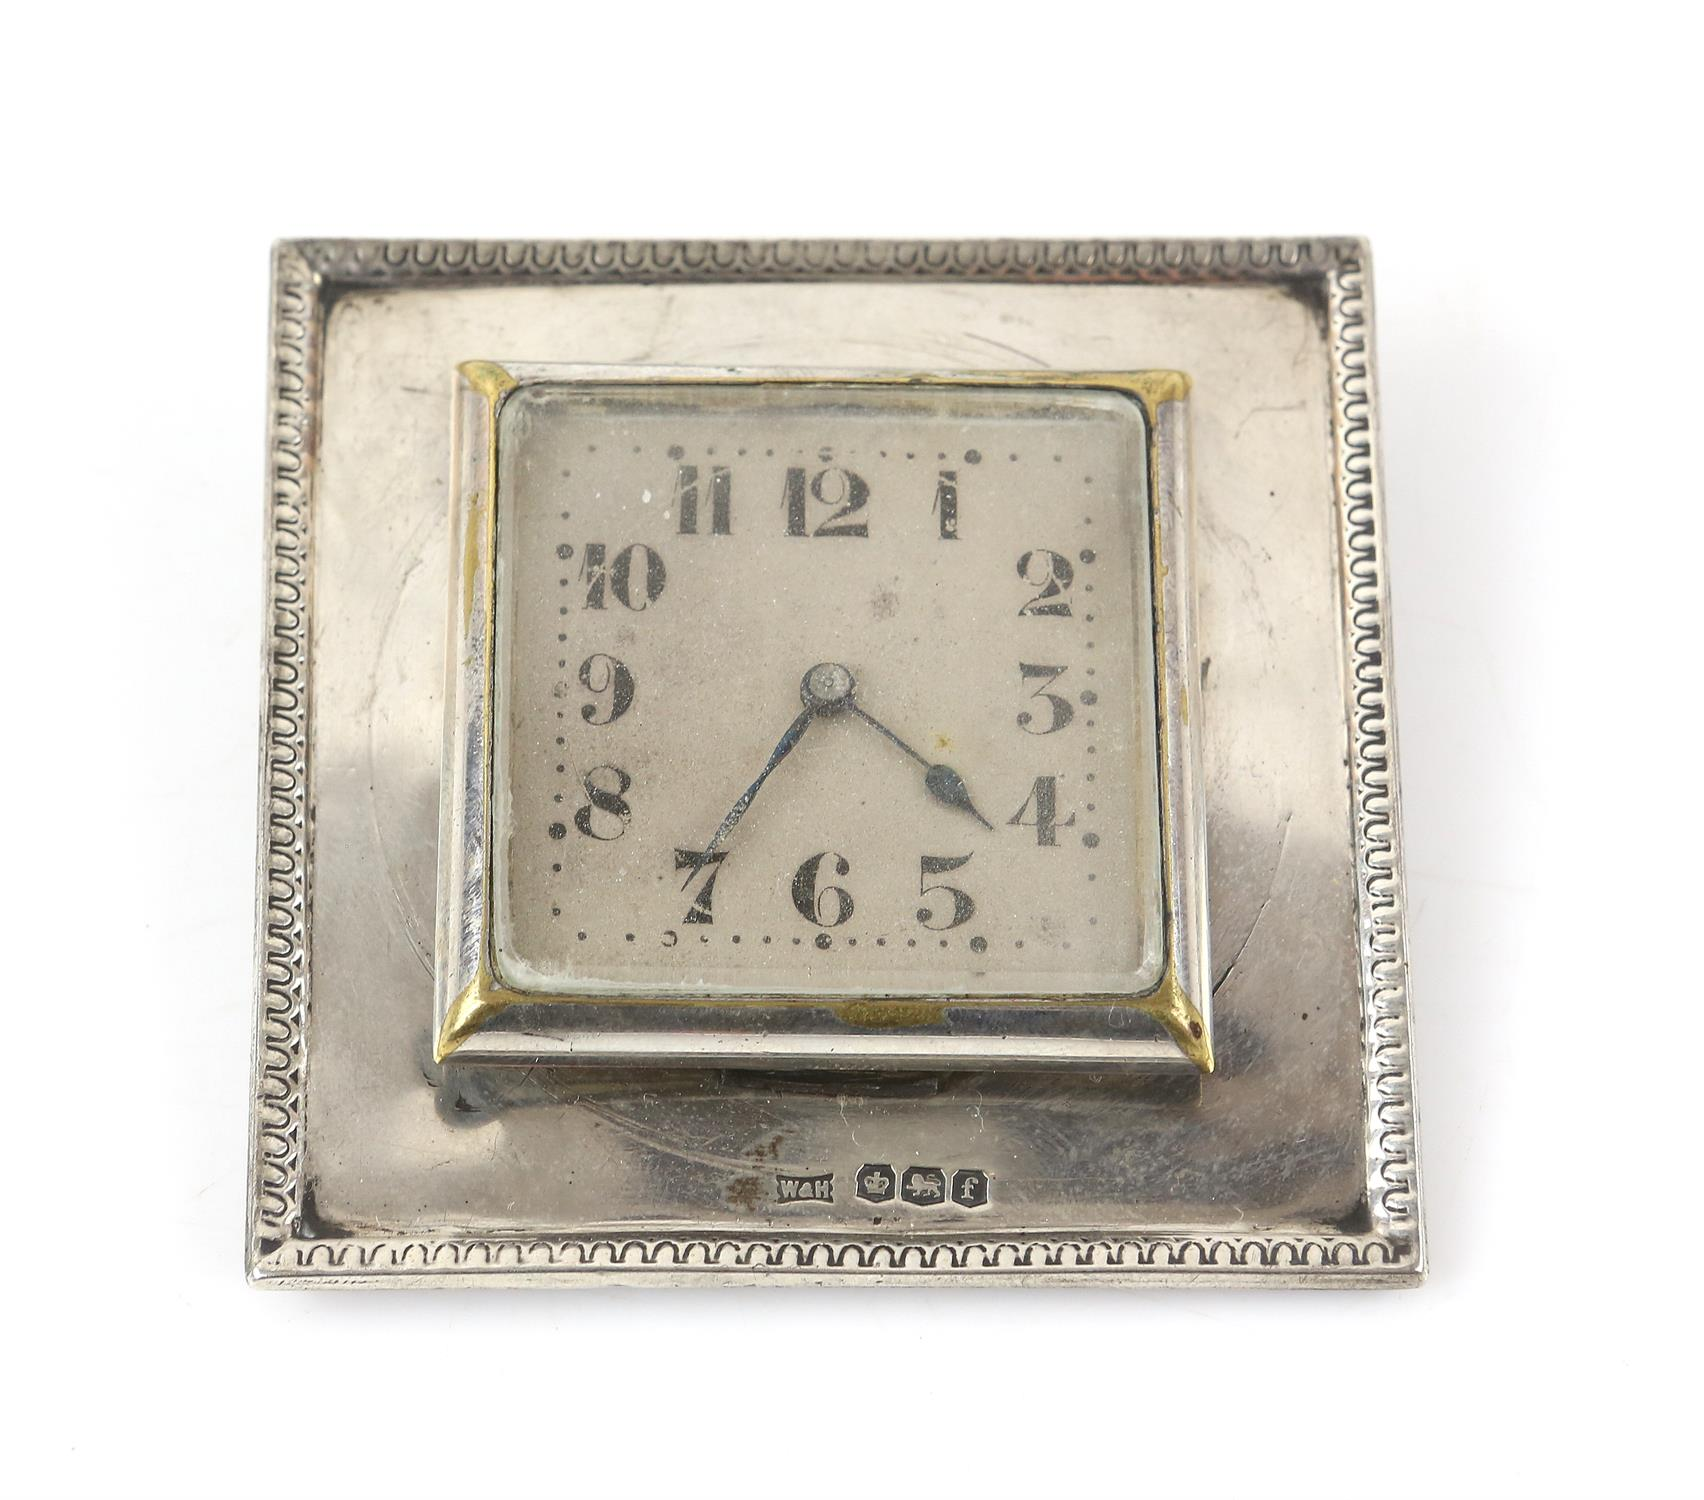 Walker and hall silver framed clock, an Indian silver white metal desk top card holder and a - Image 6 of 8